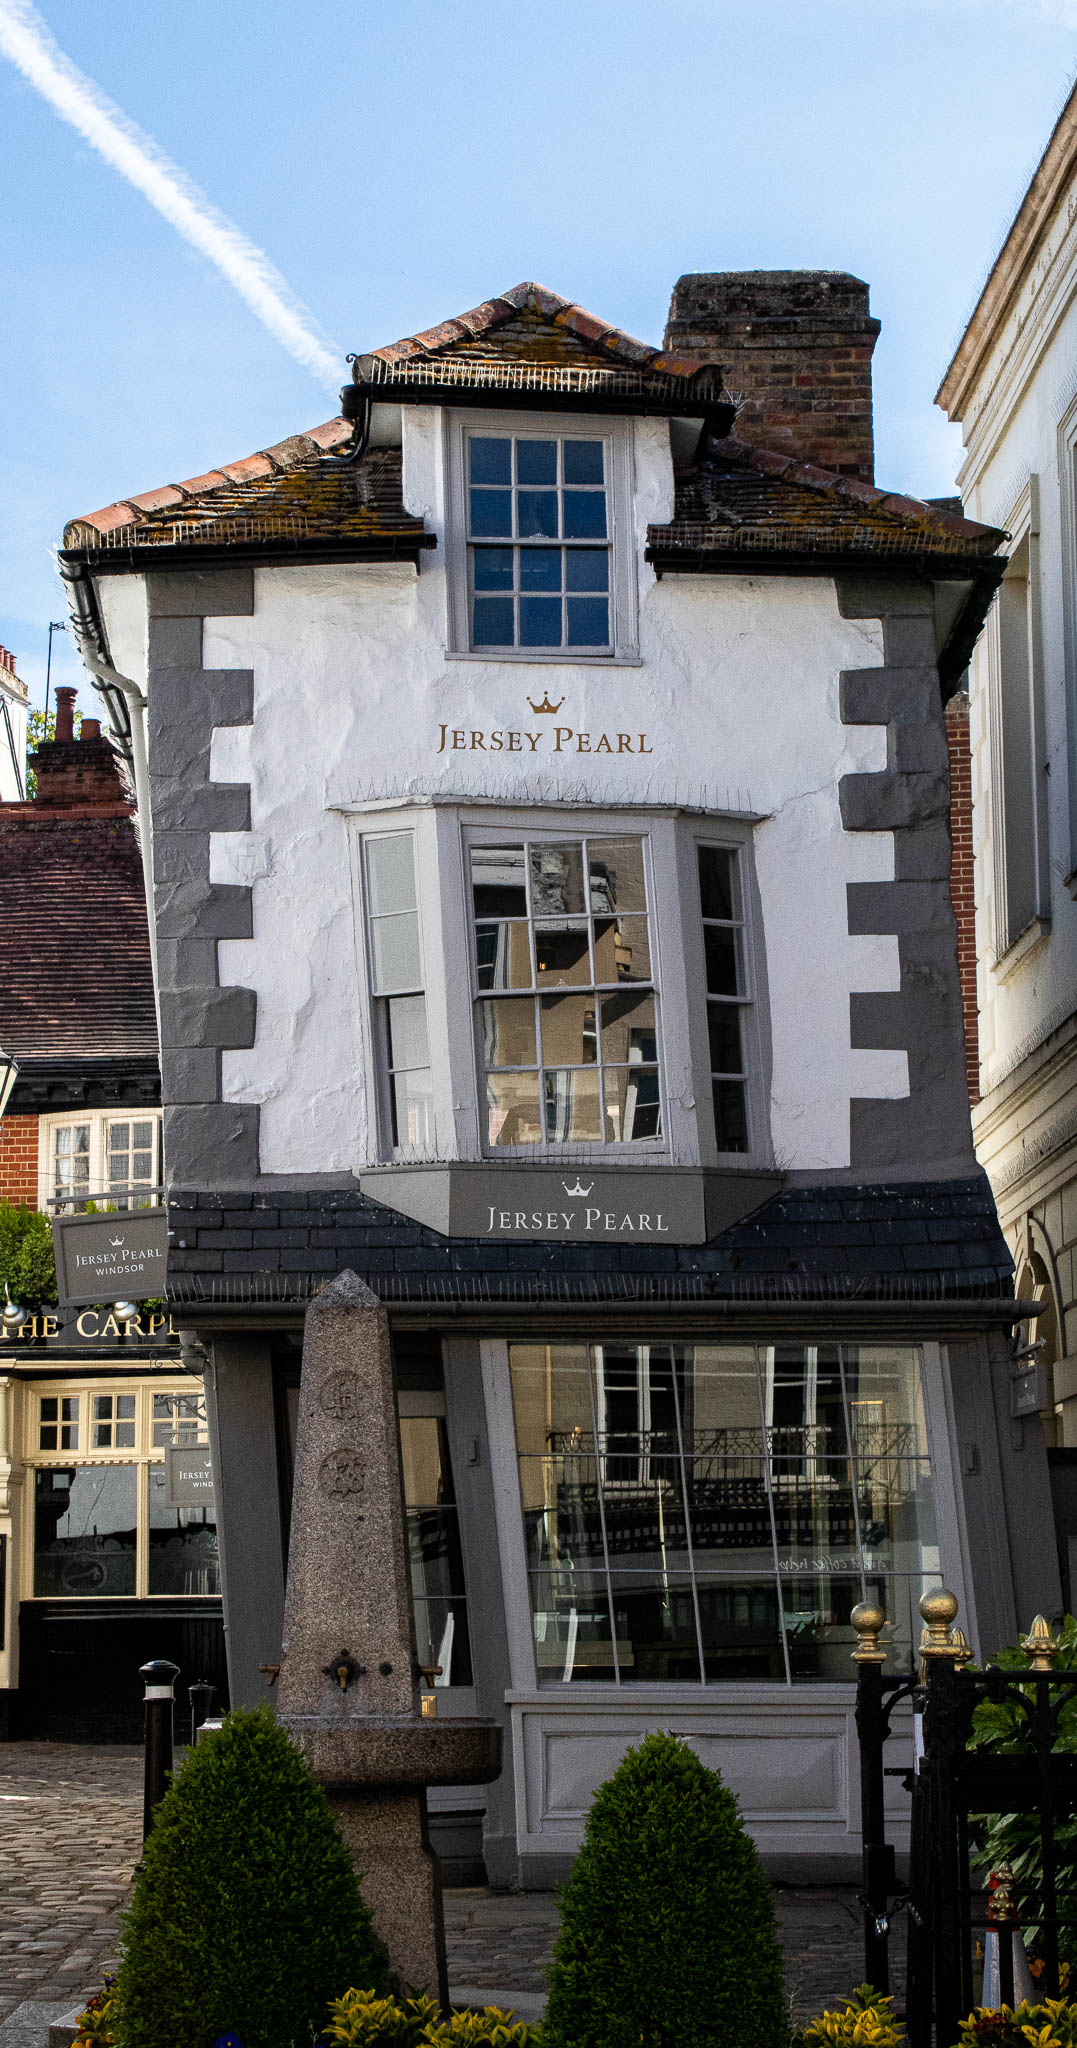 The Crooked House of Windsor is one of the towns quirkiest and most photographed buildings.